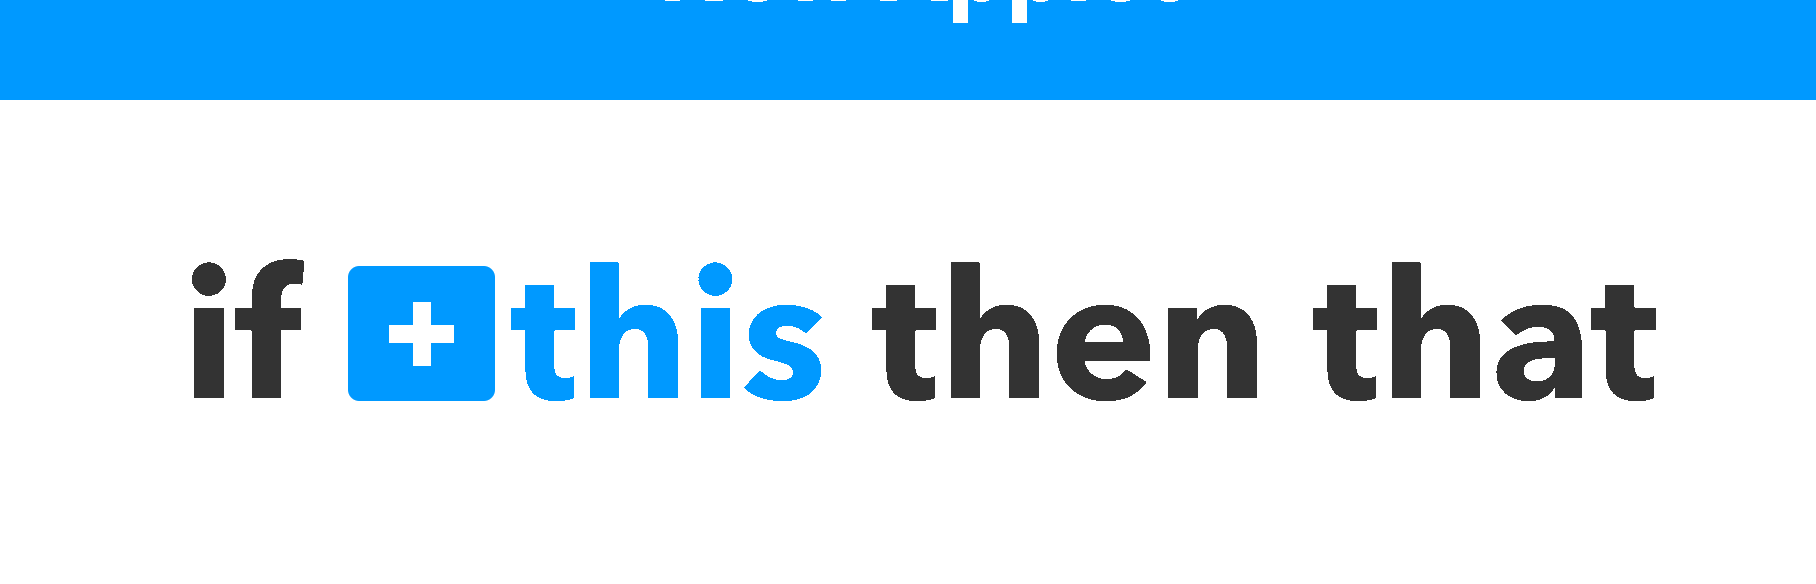 IFTTT - If this